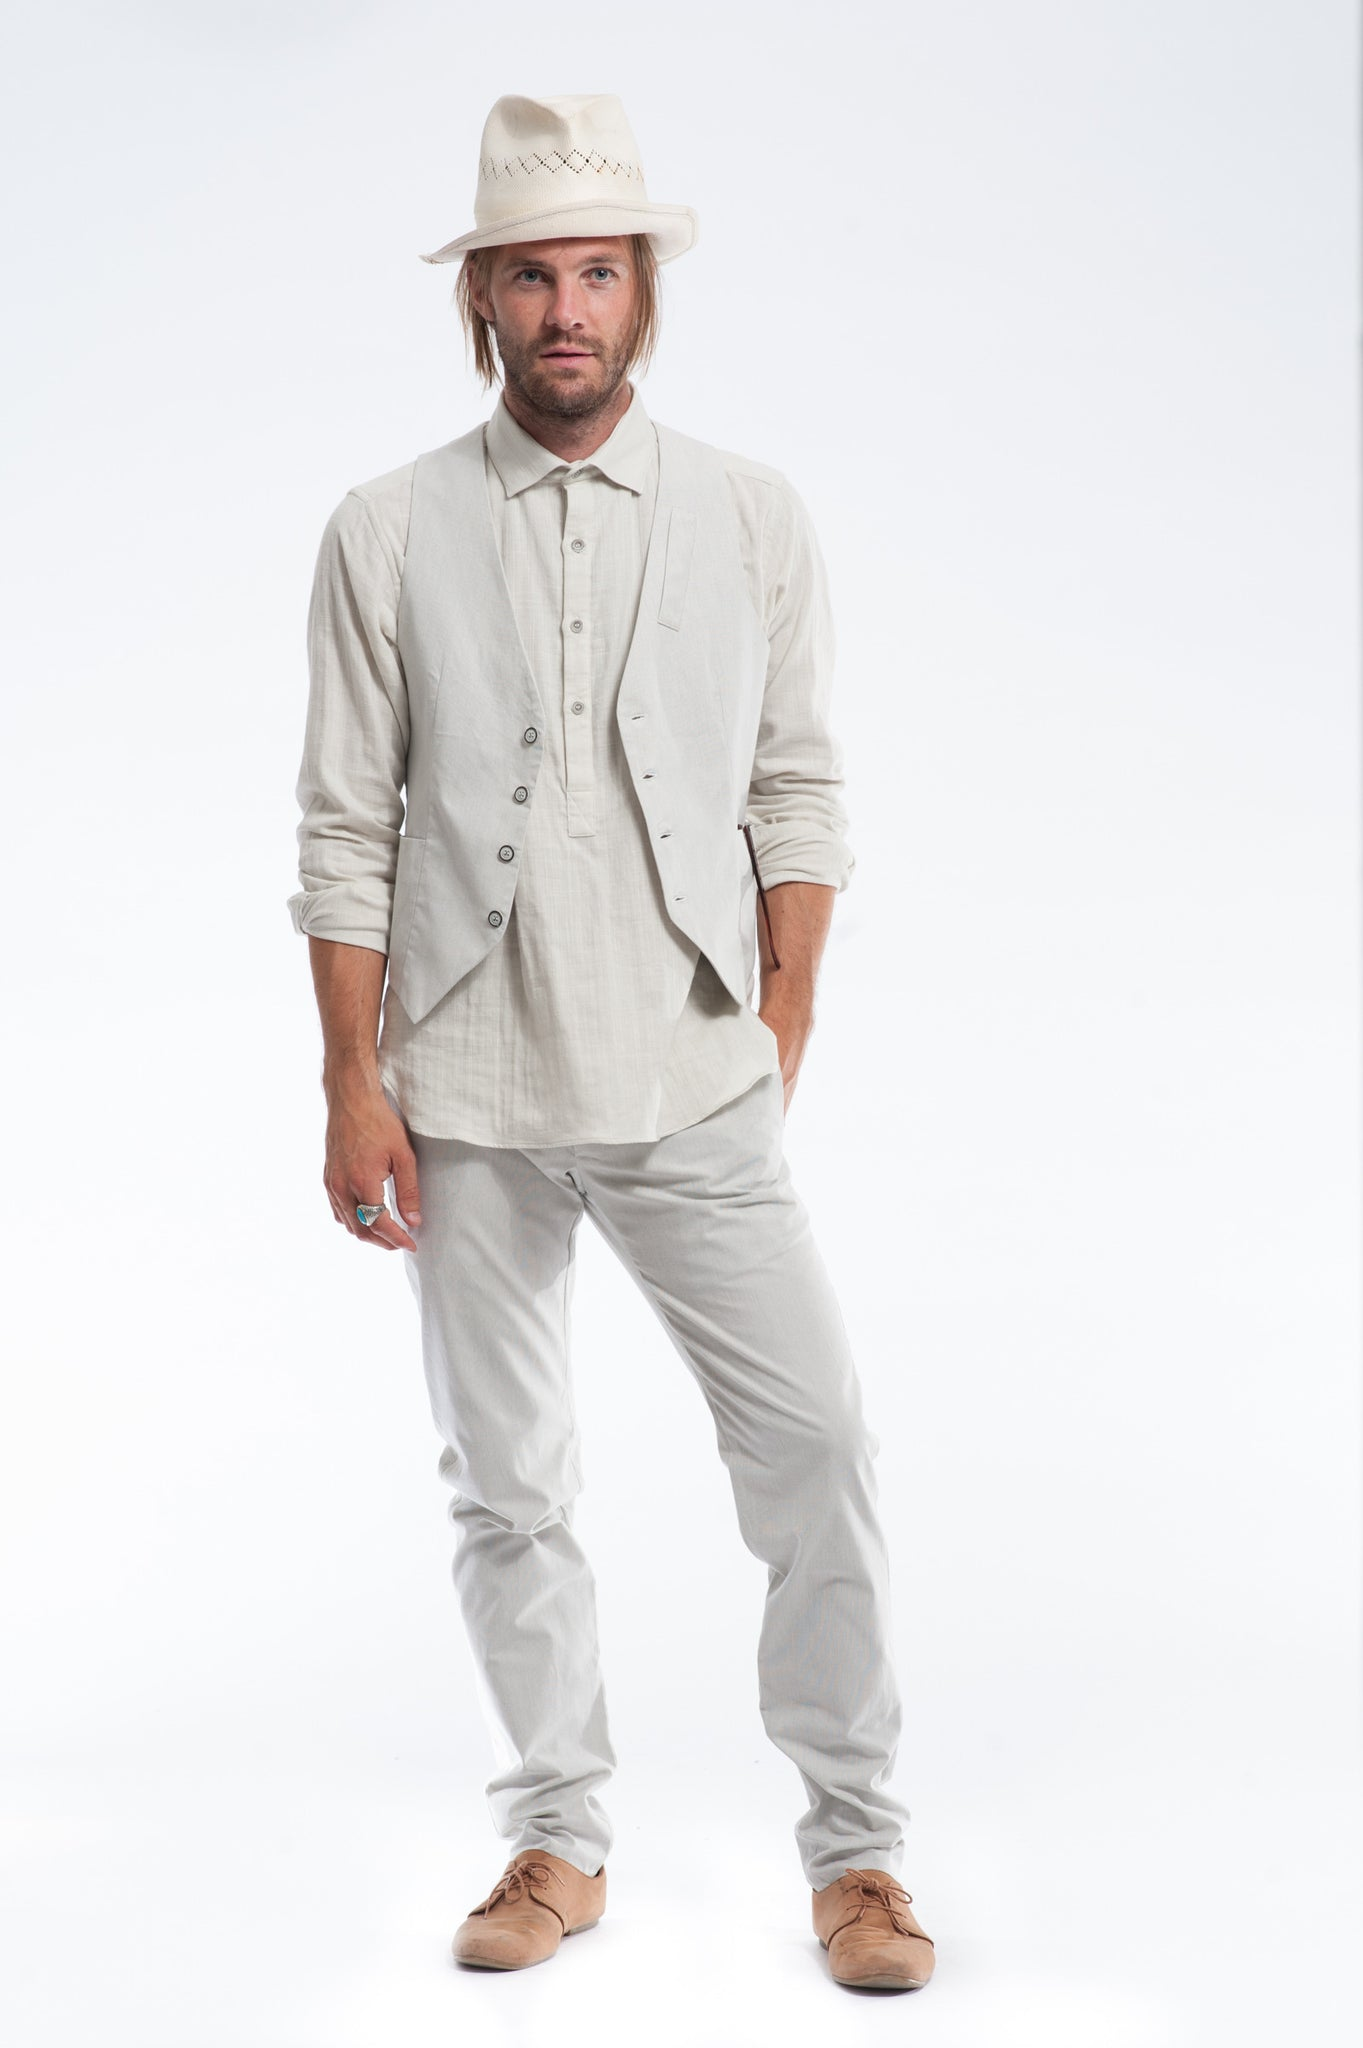 Off-White Pinstripe Suit with Vest | Cotton Shirt | Summer Wedding